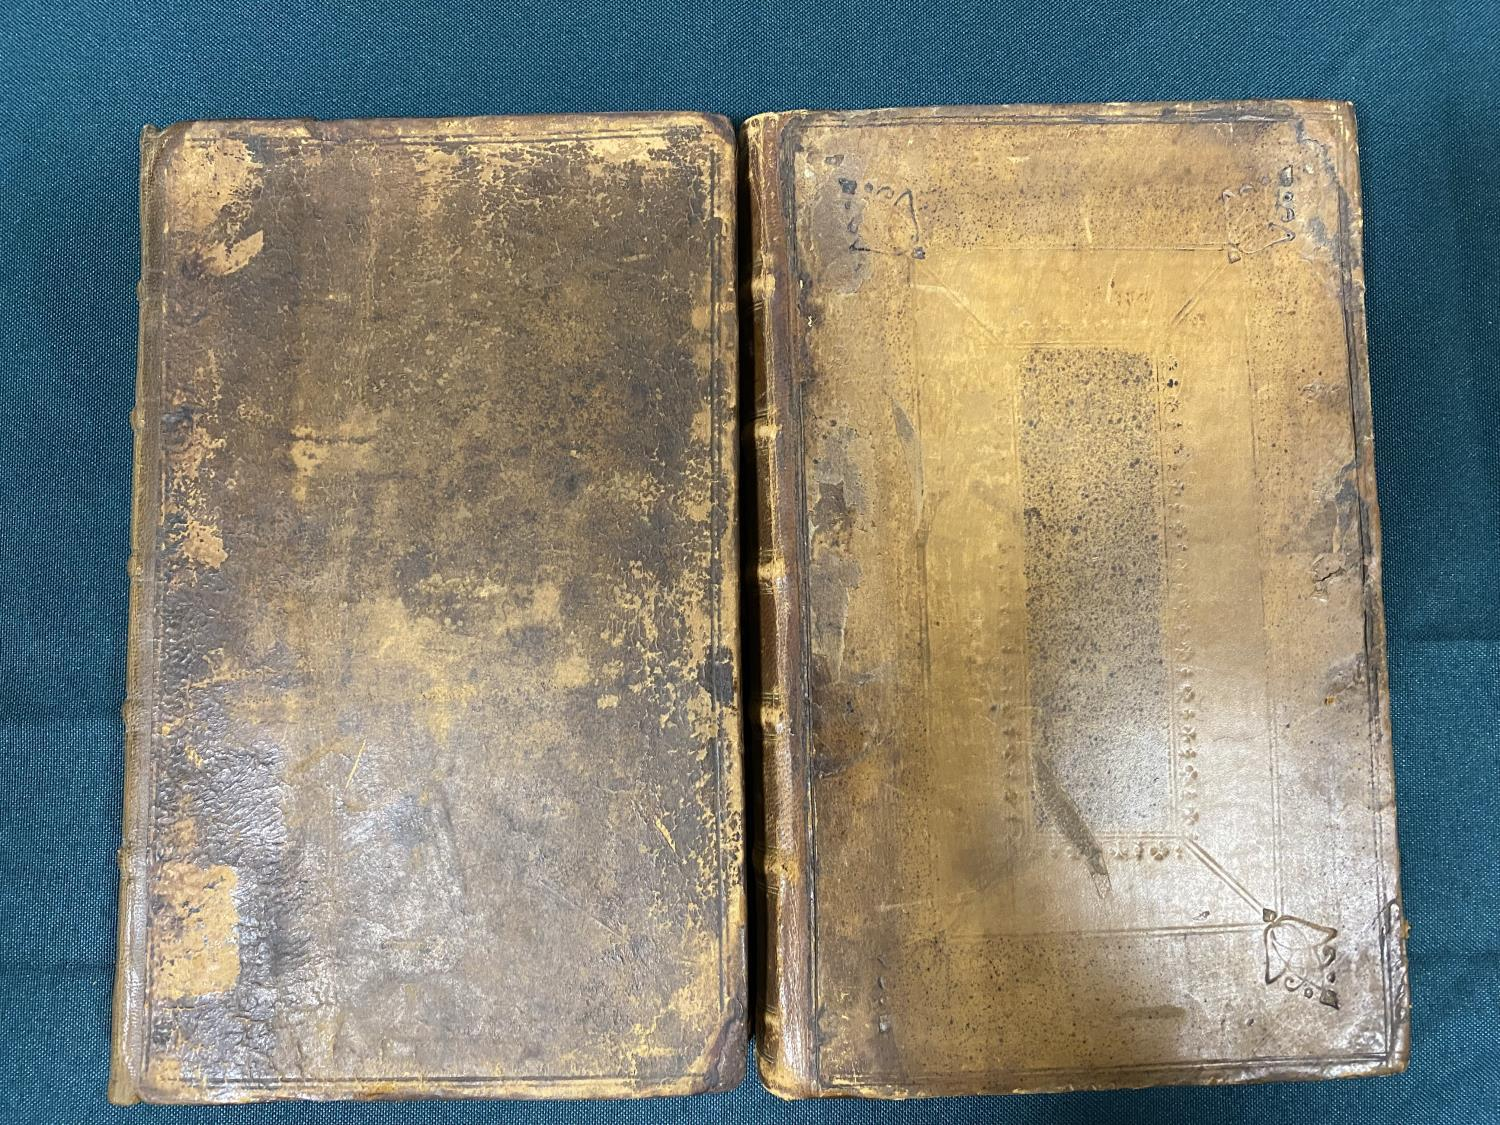 Voltaire, Francois Marie Arouet de. Letters Concerning the English Nation, first edition, later